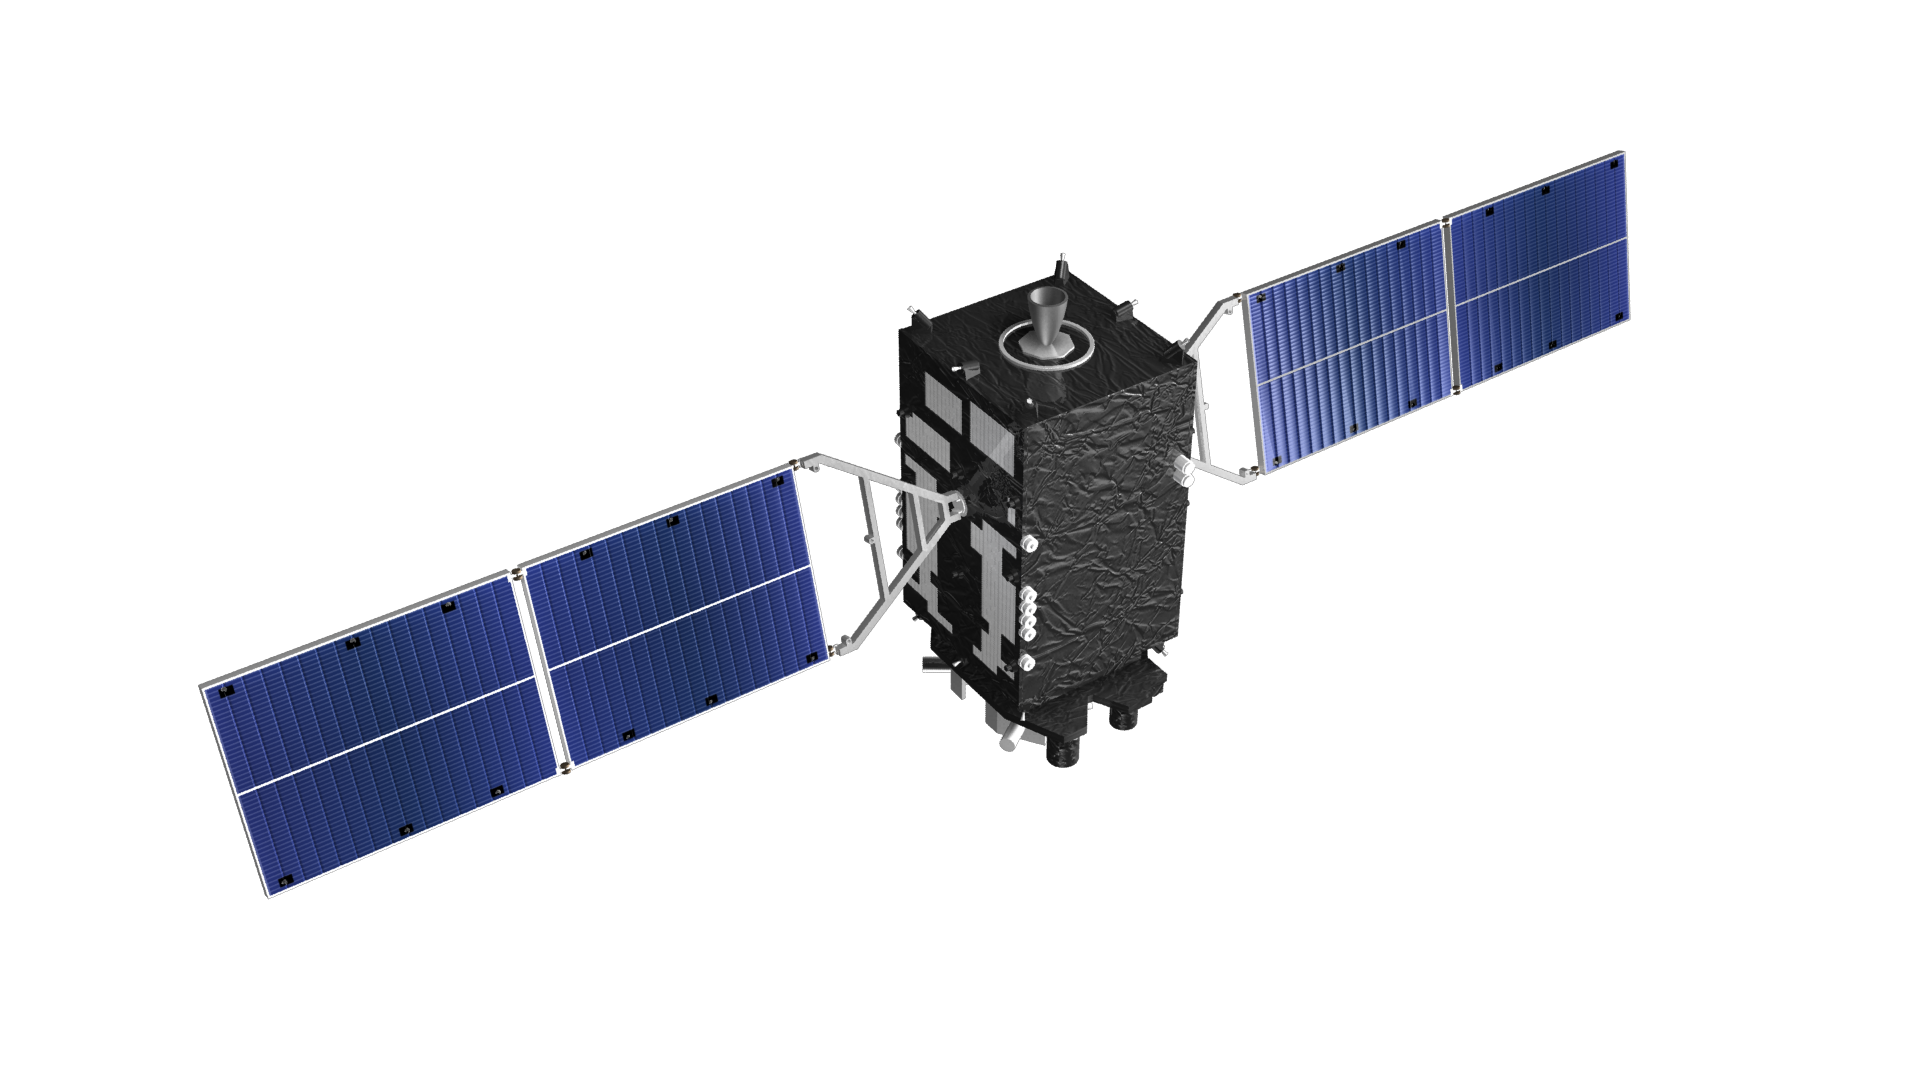 Gps satellite png. Cg images of qzs